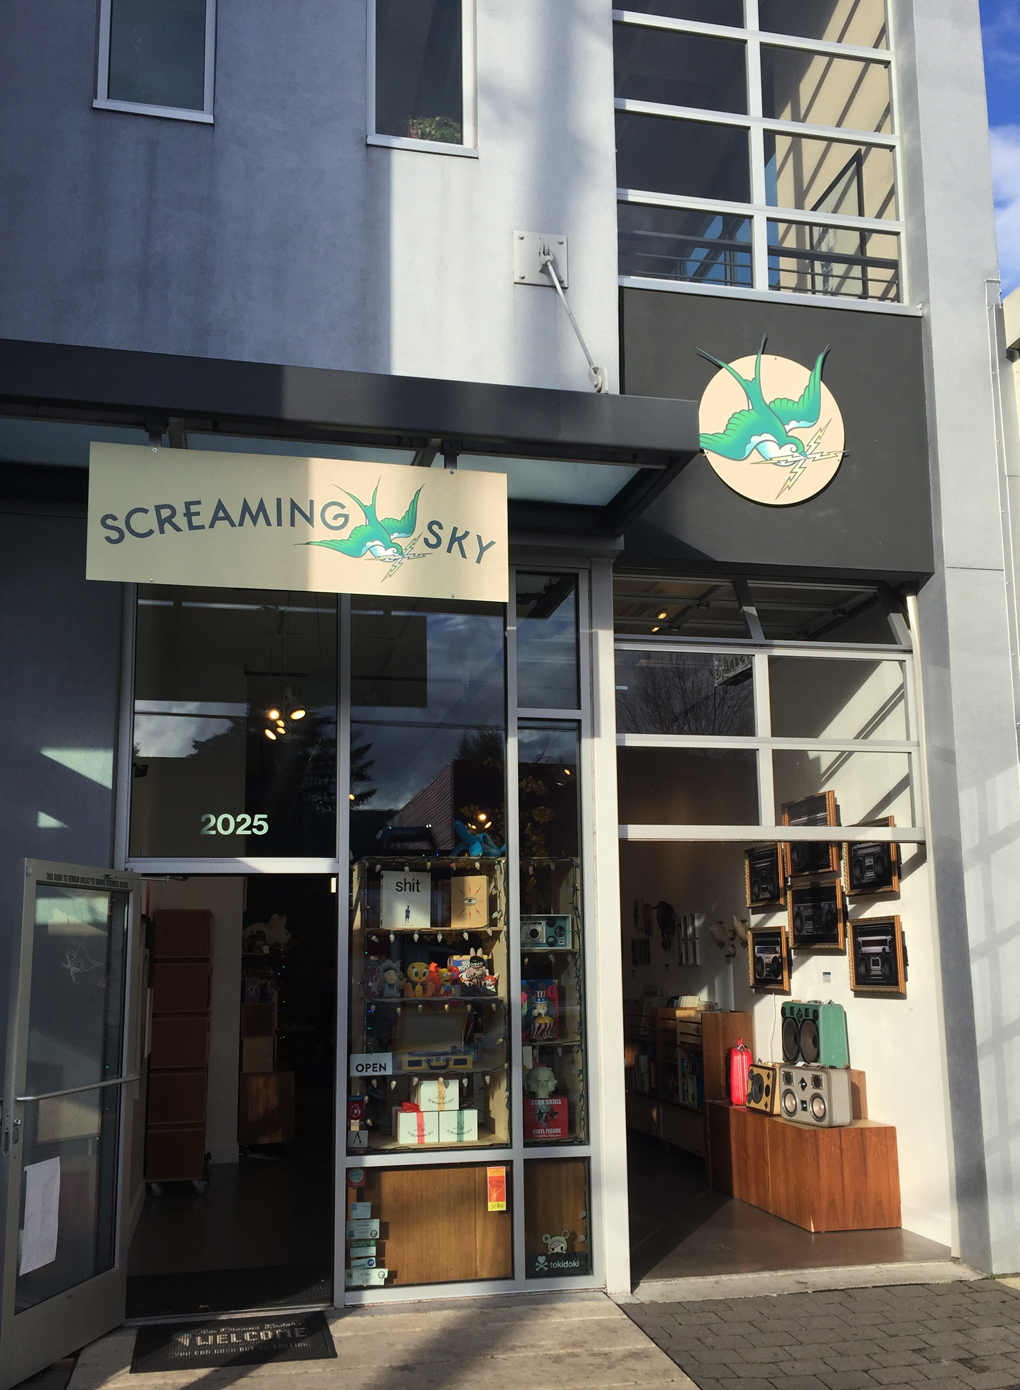 Screaming Sky storefront sign design